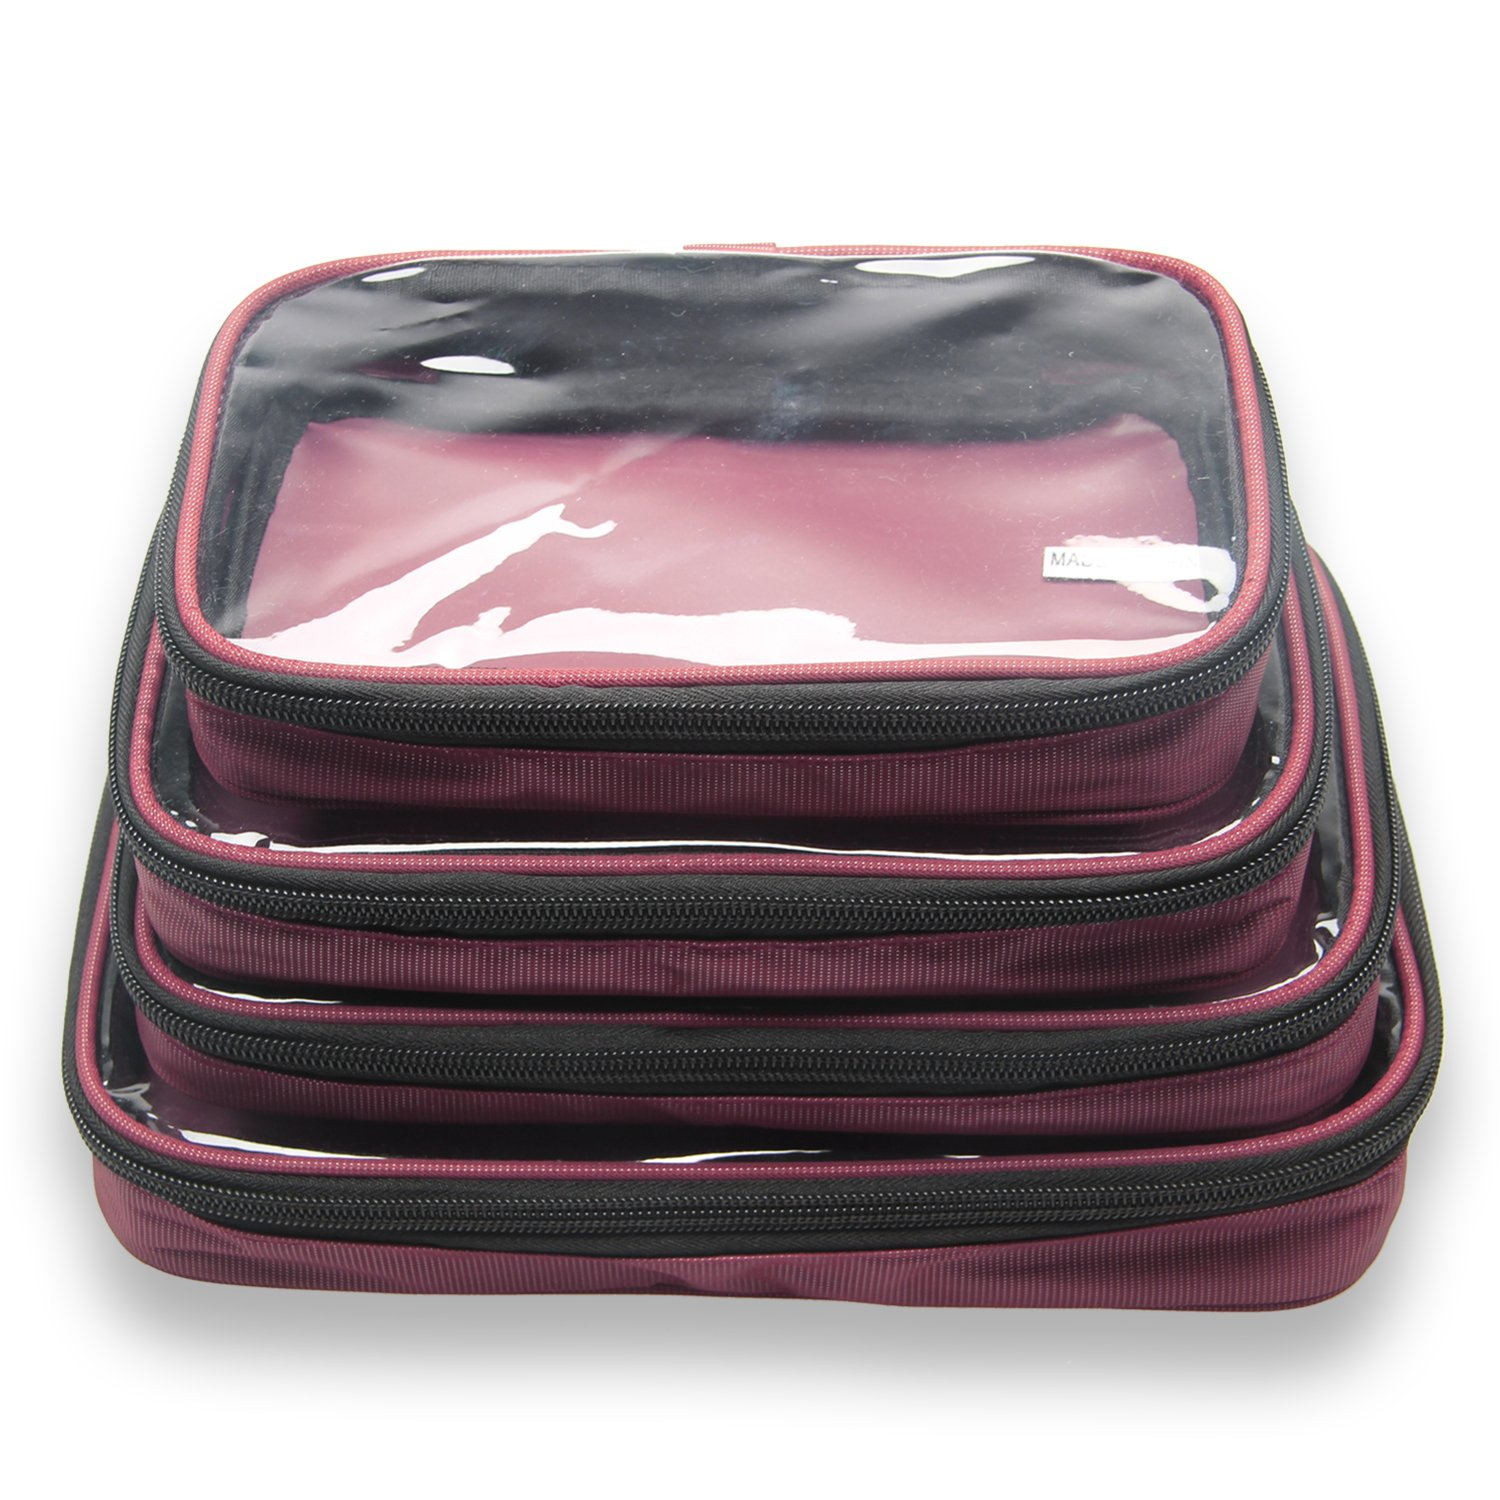 on sale Damero 4pcs Clear Toiletry Bag Packing Cubes 6a3fa0124587c